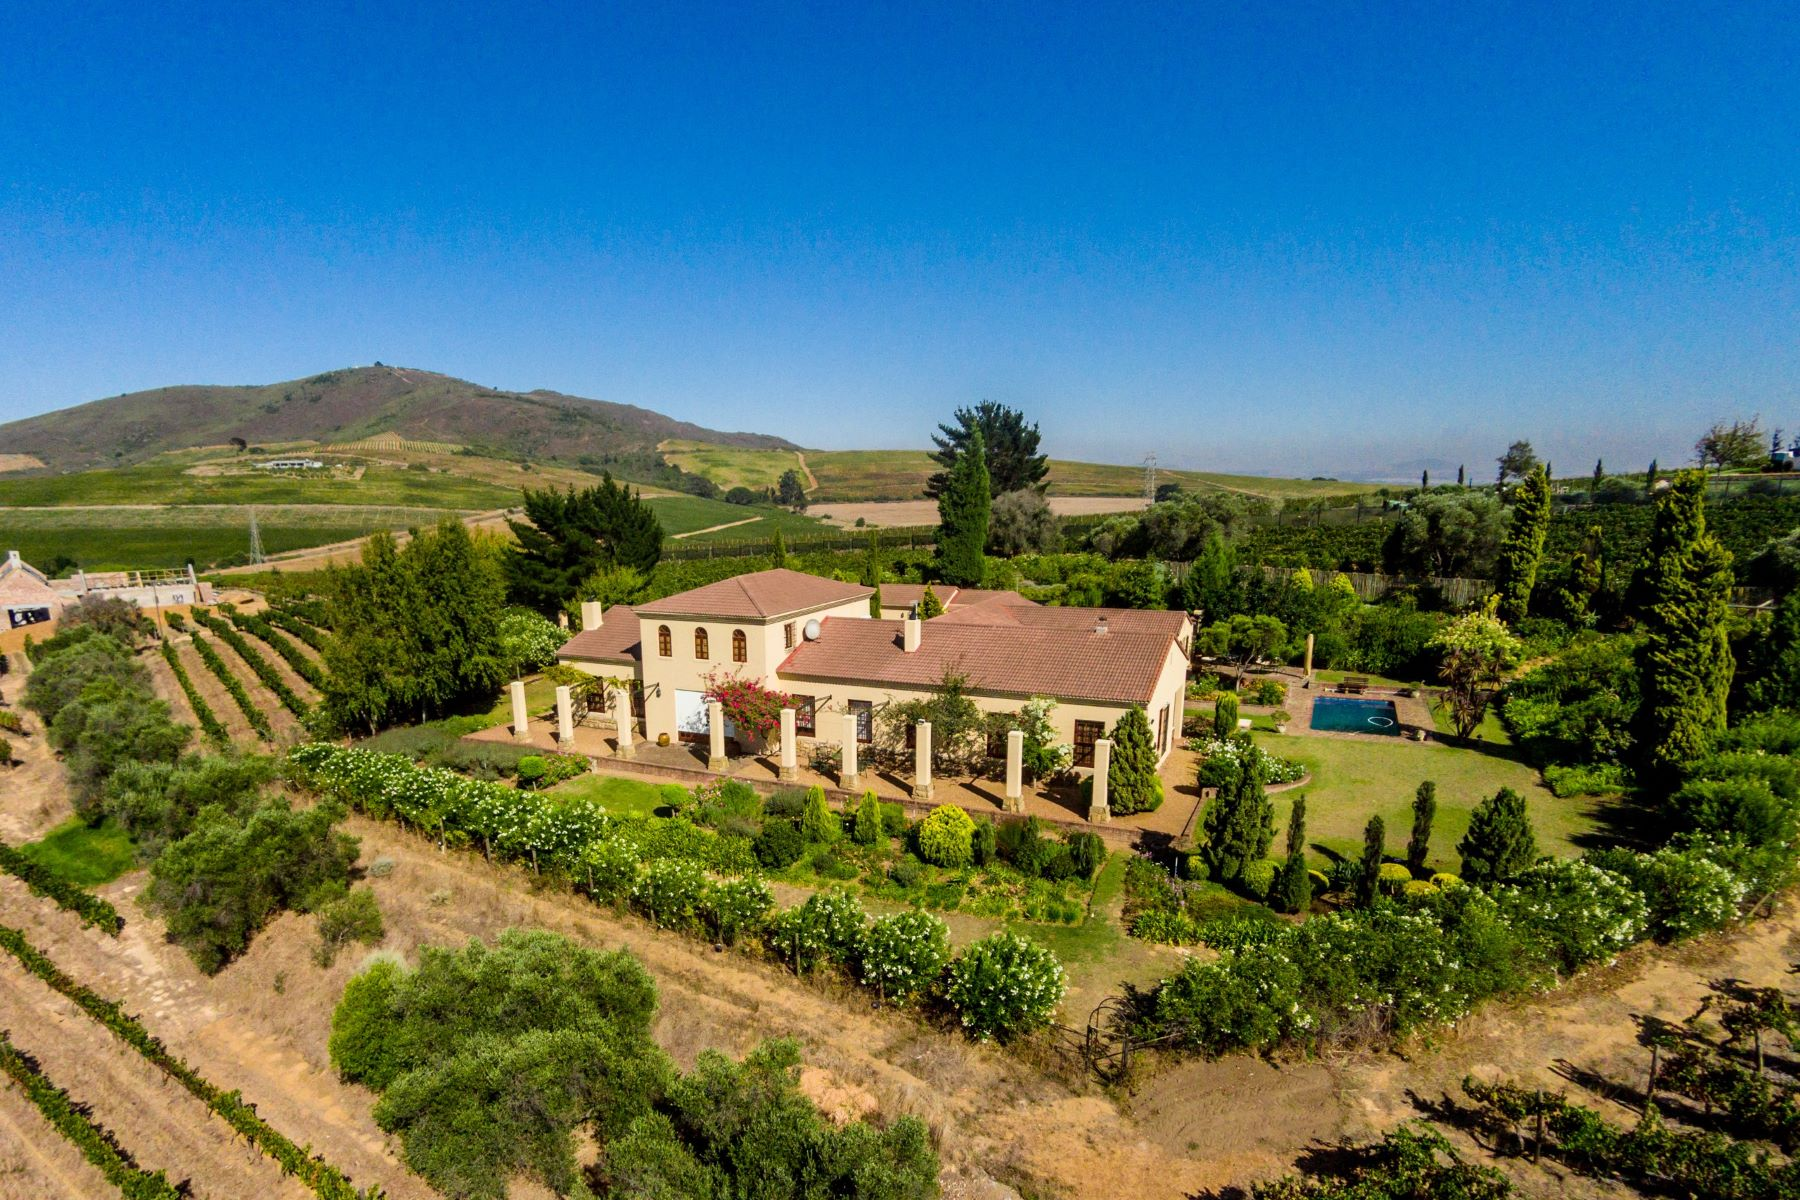 Farm / Ranch / Plantation for Sale at Unsurpassed views in sought after Devon Valley Stellenbosch, Western Cape, 7600 South Africa